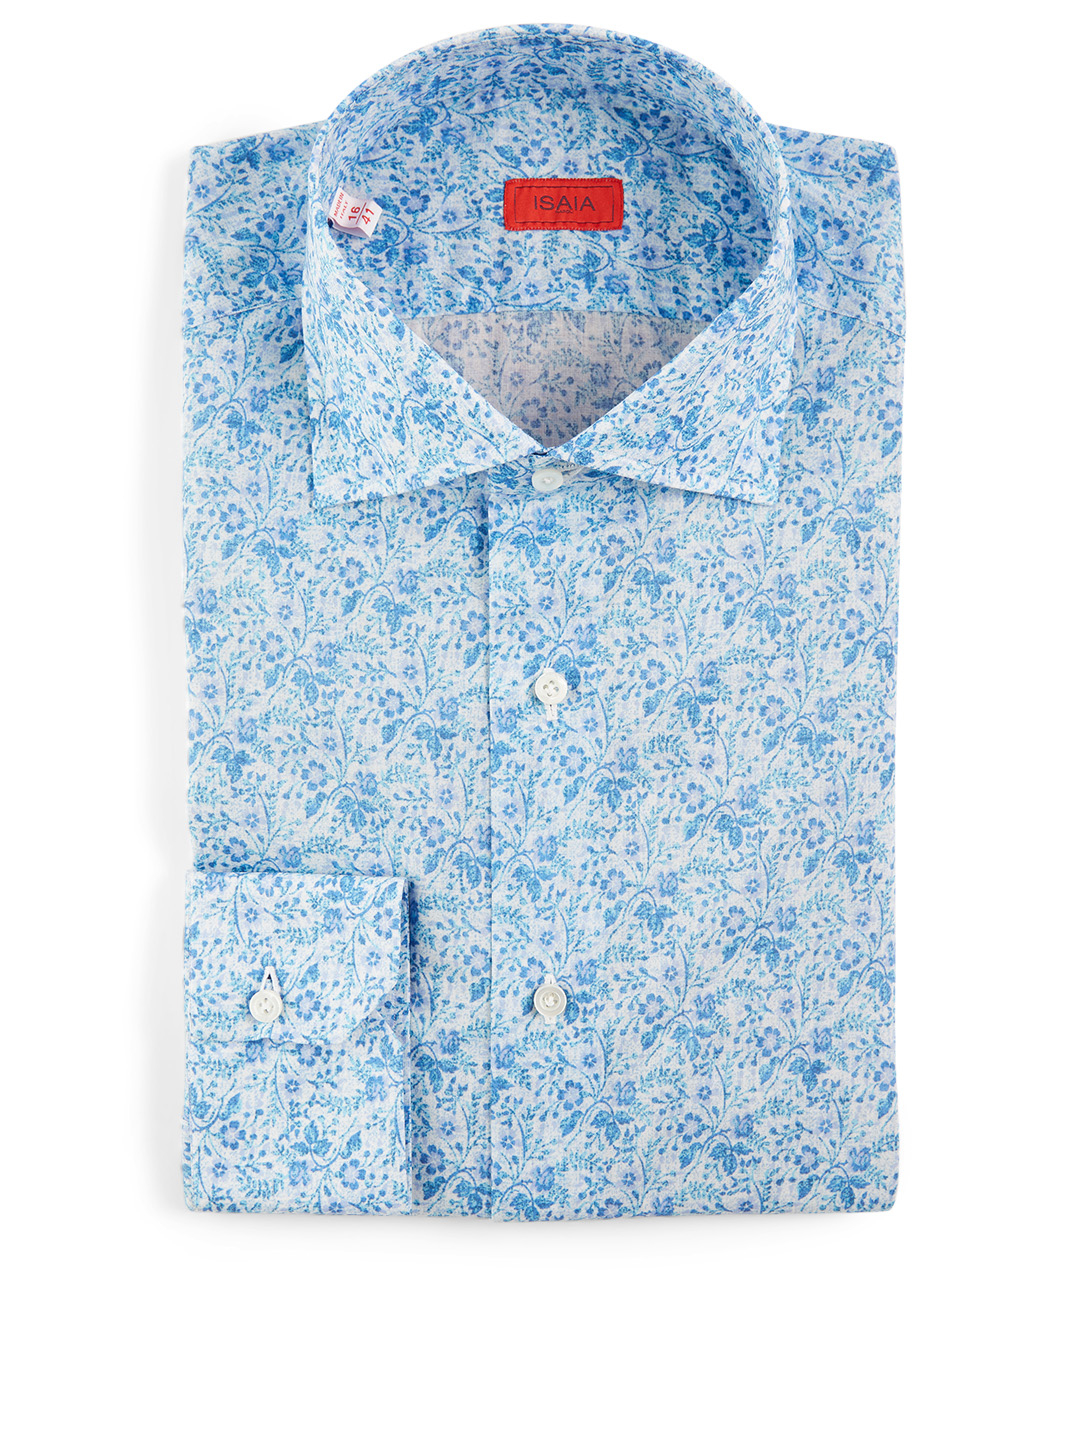 ISAIA Dress Shirt In Floral Print Men's Blue